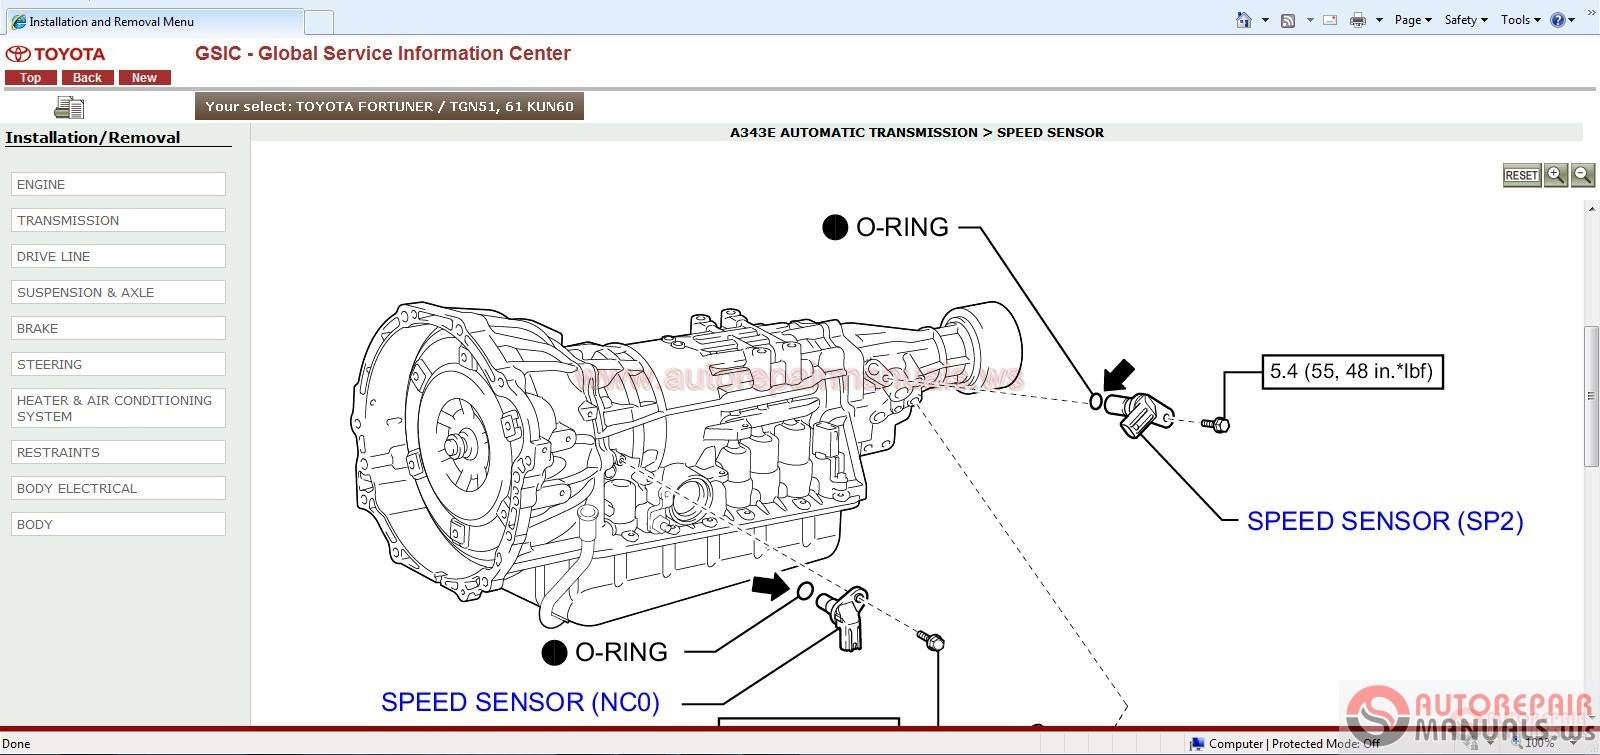 Toyota Gsic Repair Manual Wiring Diagram Body Repair And Etc Full 2016 moreover Wiring Diagram For 7 Prong Trailer Plug in addition 2004 F150 Starter Wiring Diagram together with Toyota Tundra Fog Light Wiring Diagram in addition Hyundai Snowflake Warning Light. on toyota wiring diagrams download